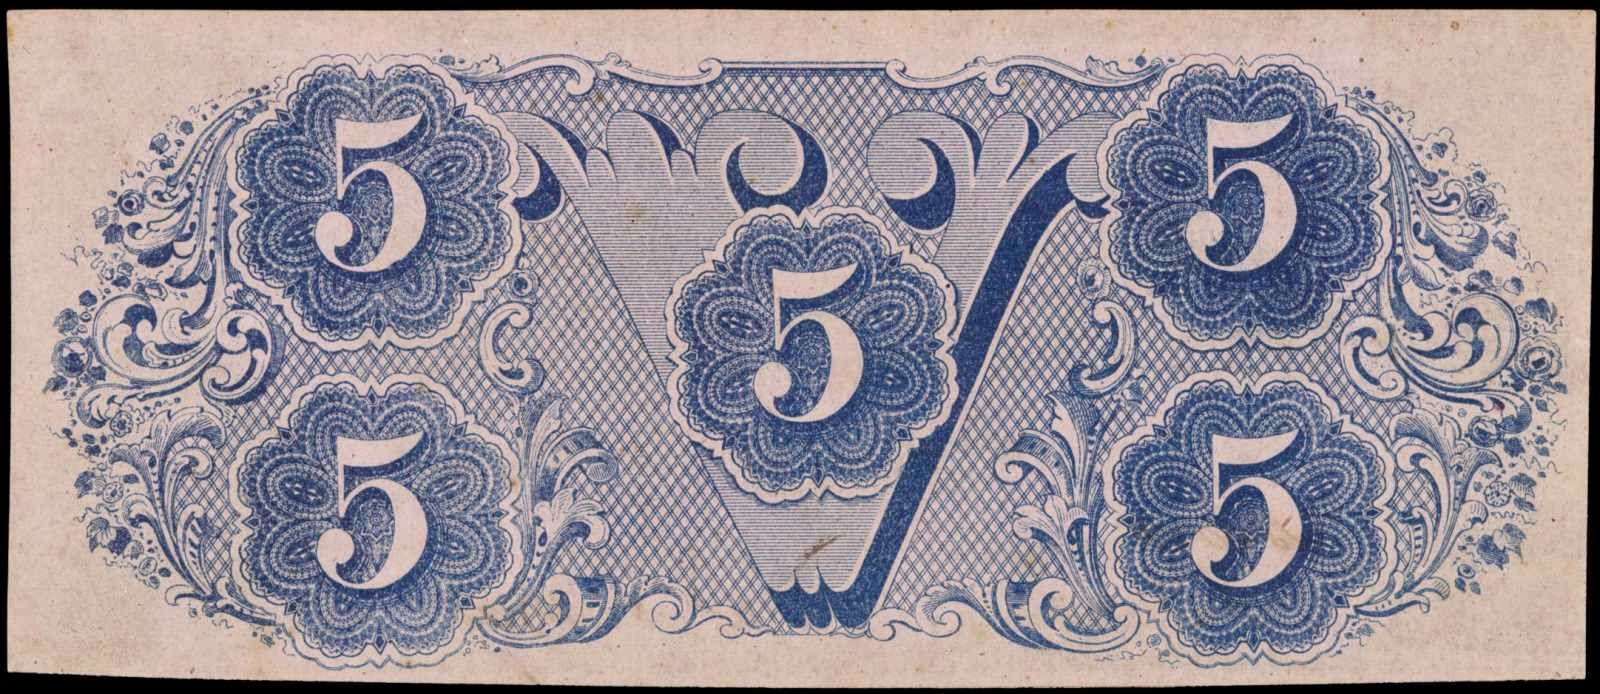 Confederate Money Currency Five Dollars 1862